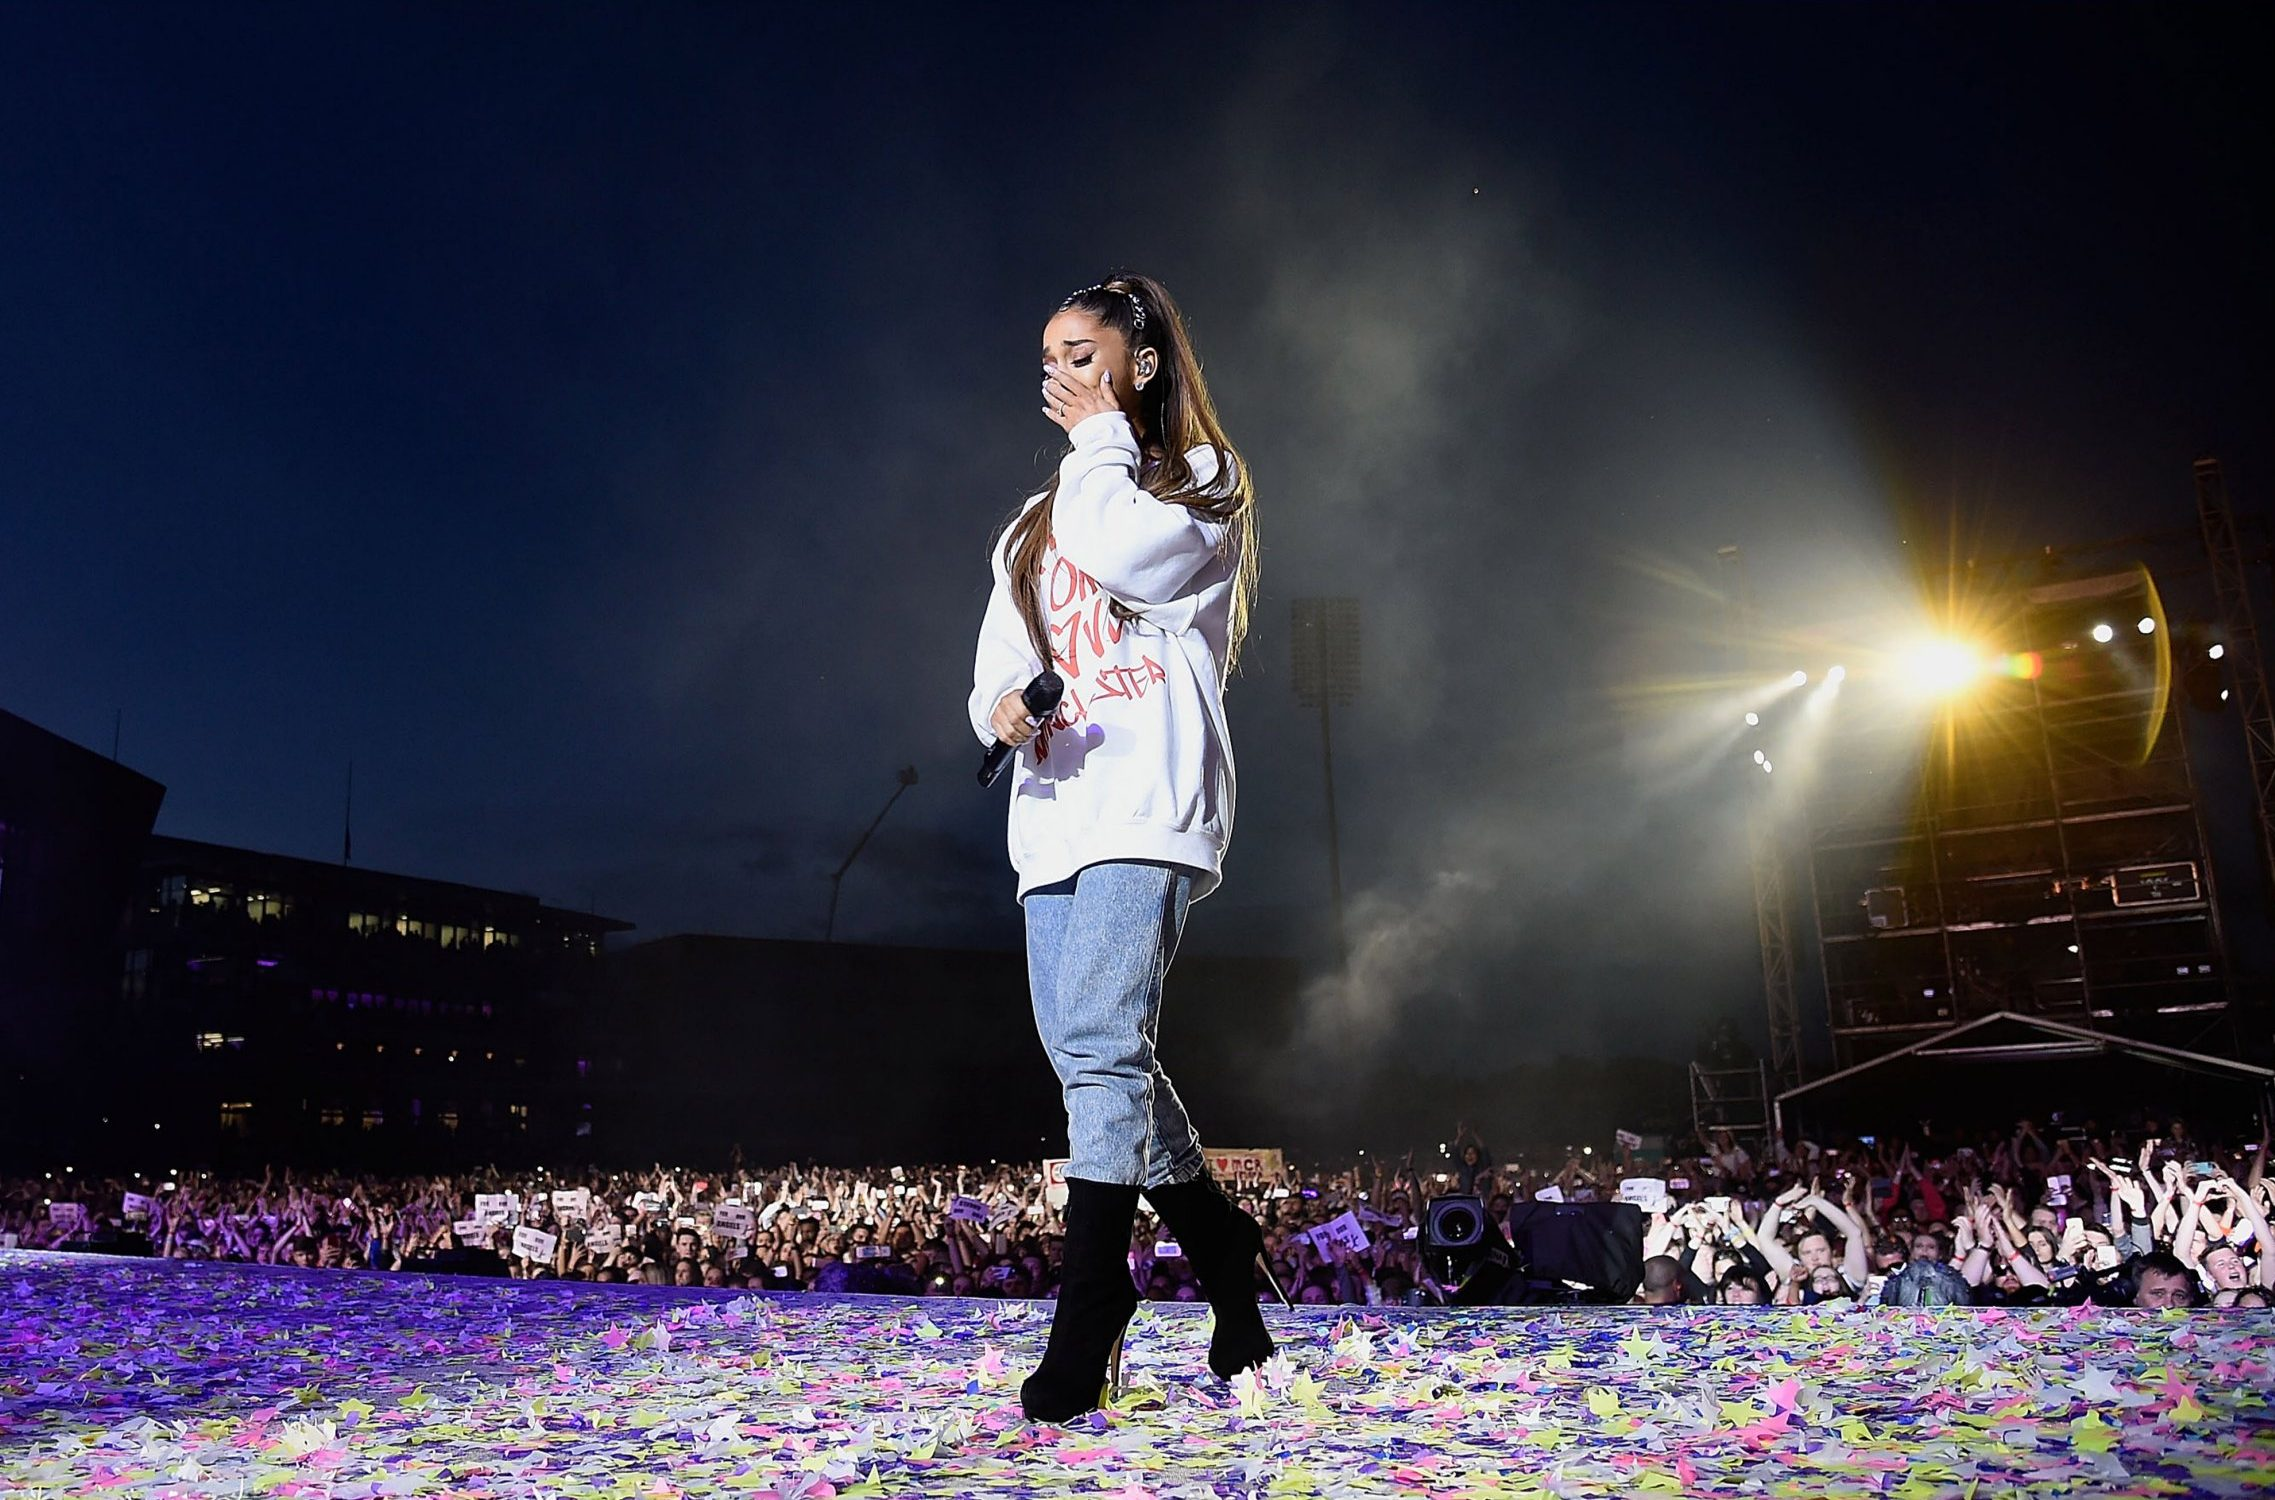 Ariana Grande 'suffered trauma' and 'cried for days' after Manchester Arena attack